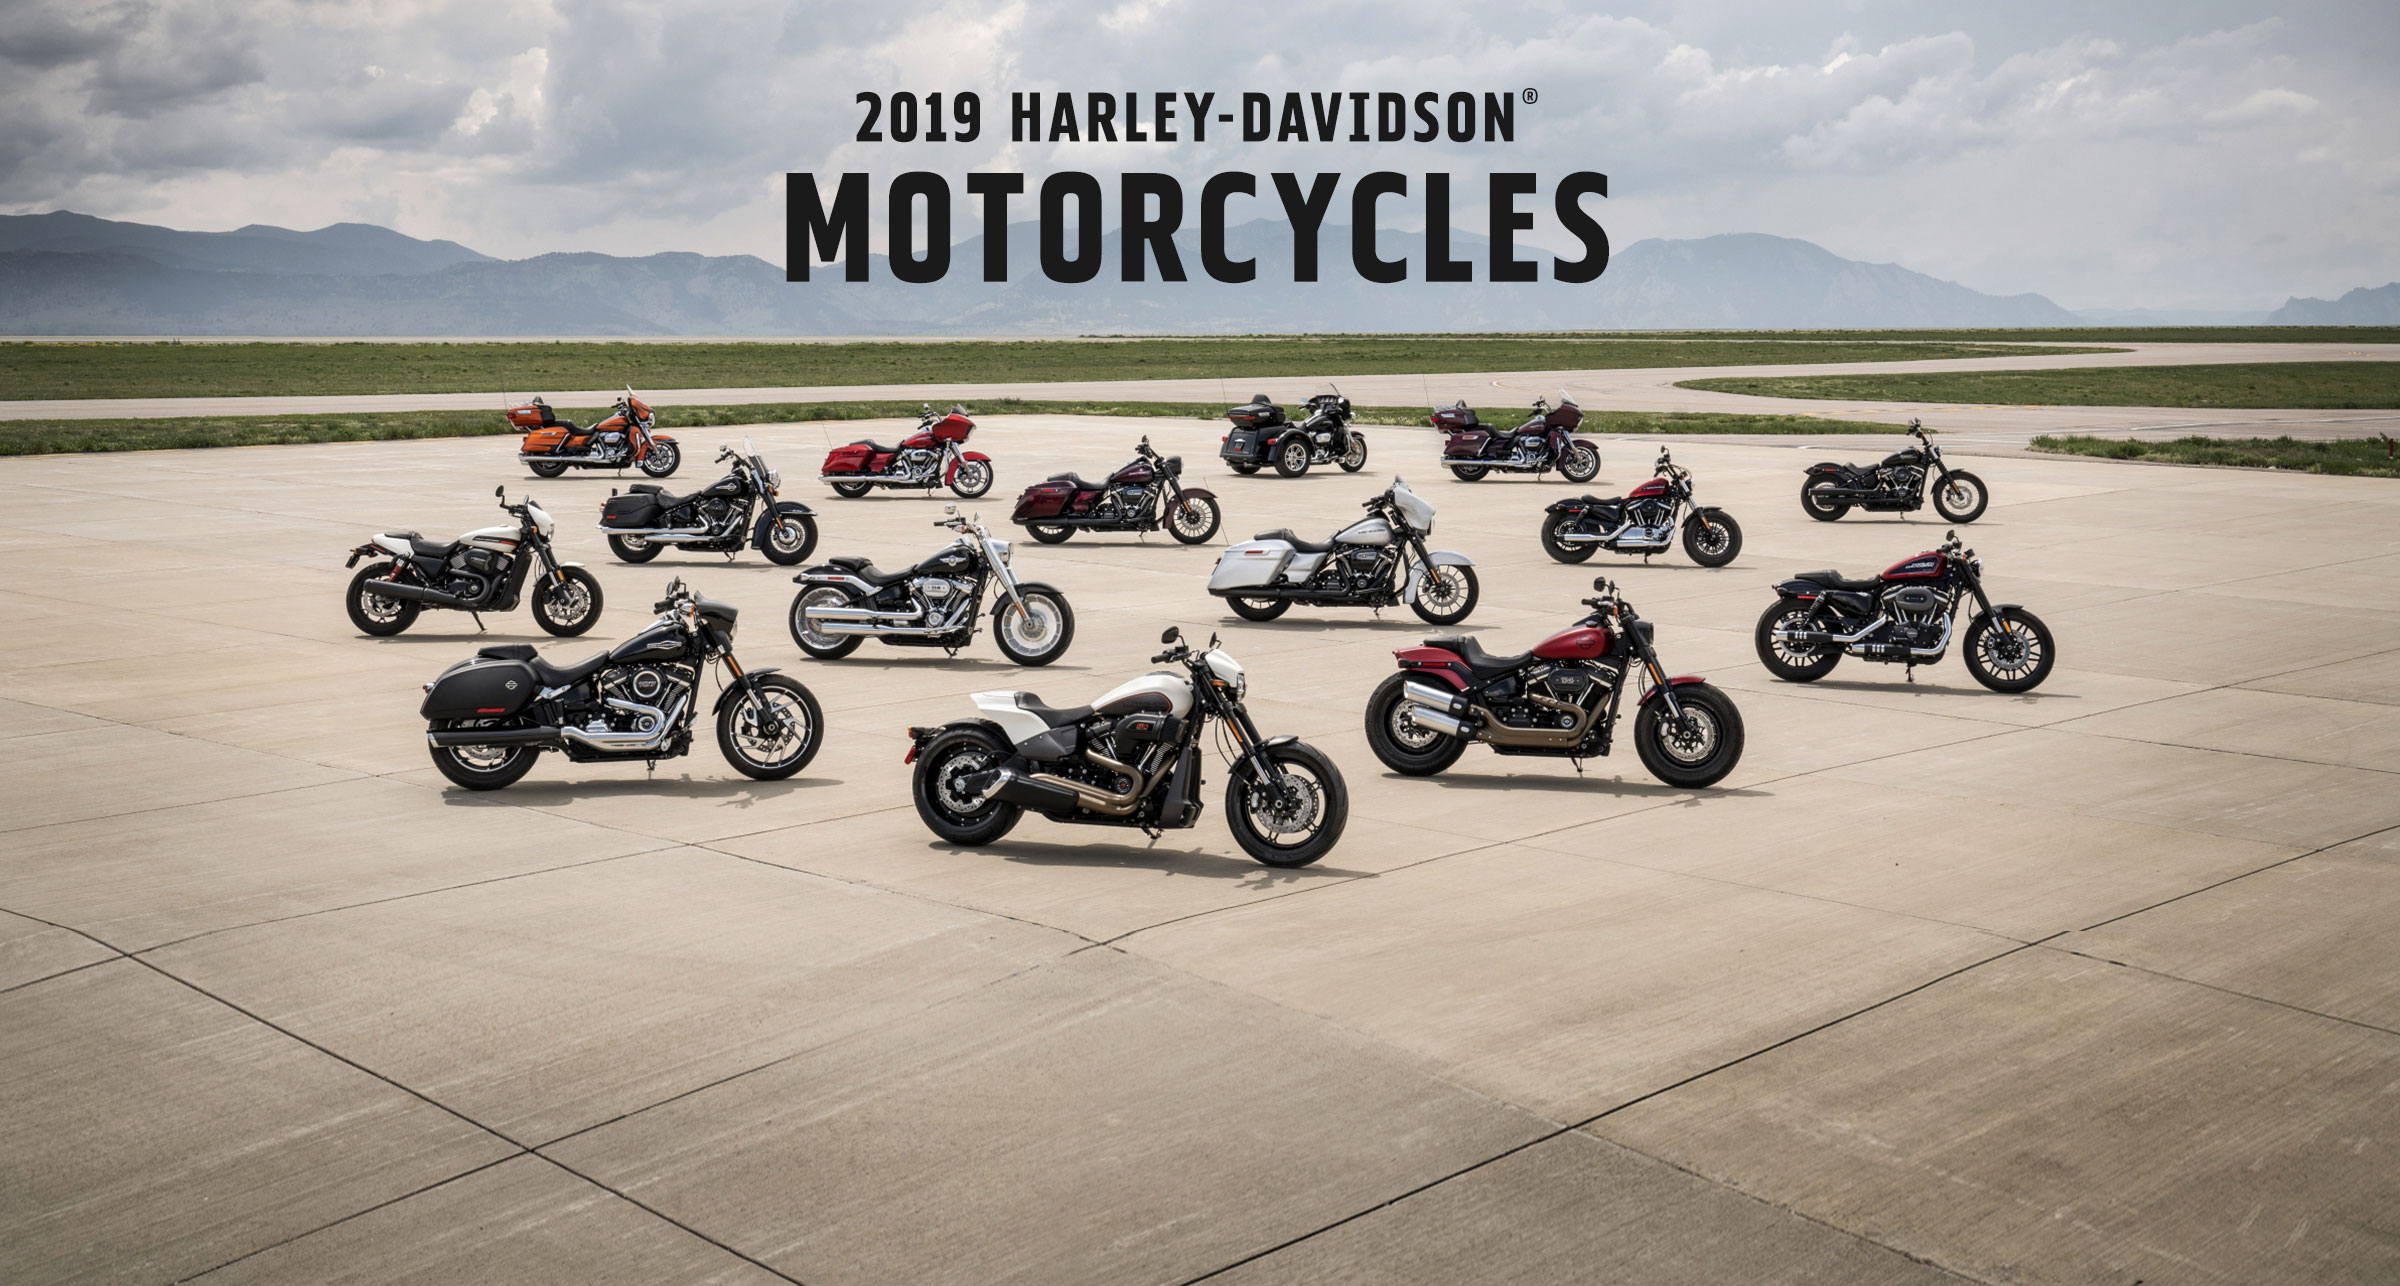 2019 Motorcycles